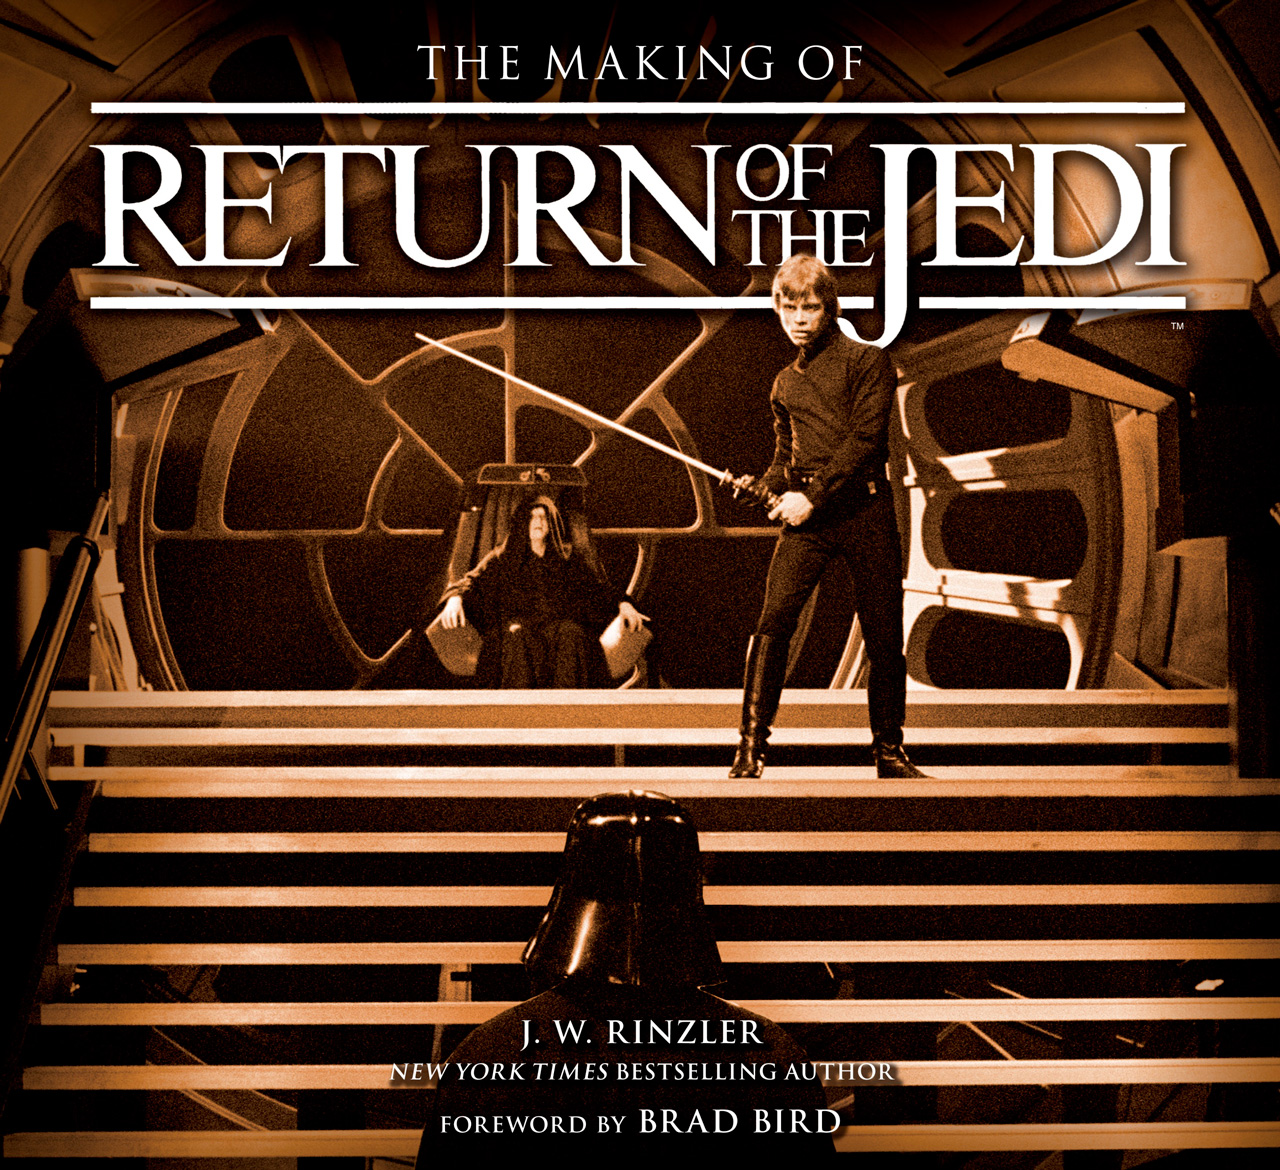 The Making of Return of the Jedi - The Essential STAR WARS in 5 1/2 Books